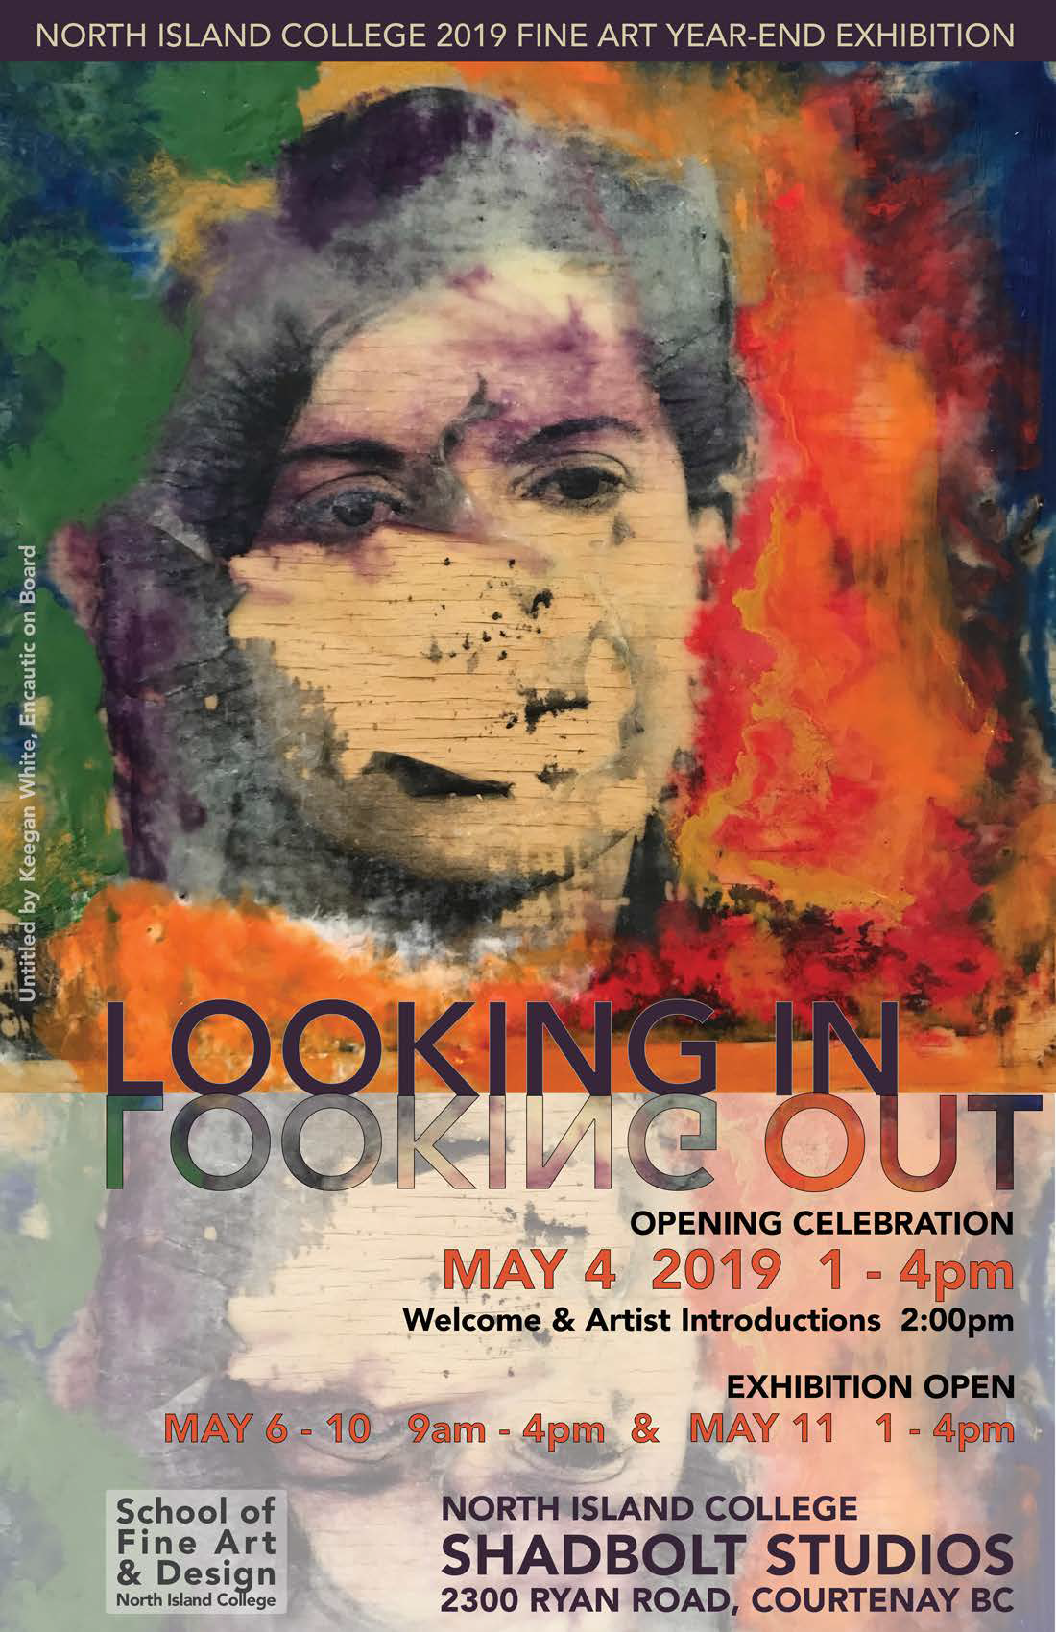 NIC Fine Art Year-end Exhibition: Looking in / Looking out (Opening Reception)